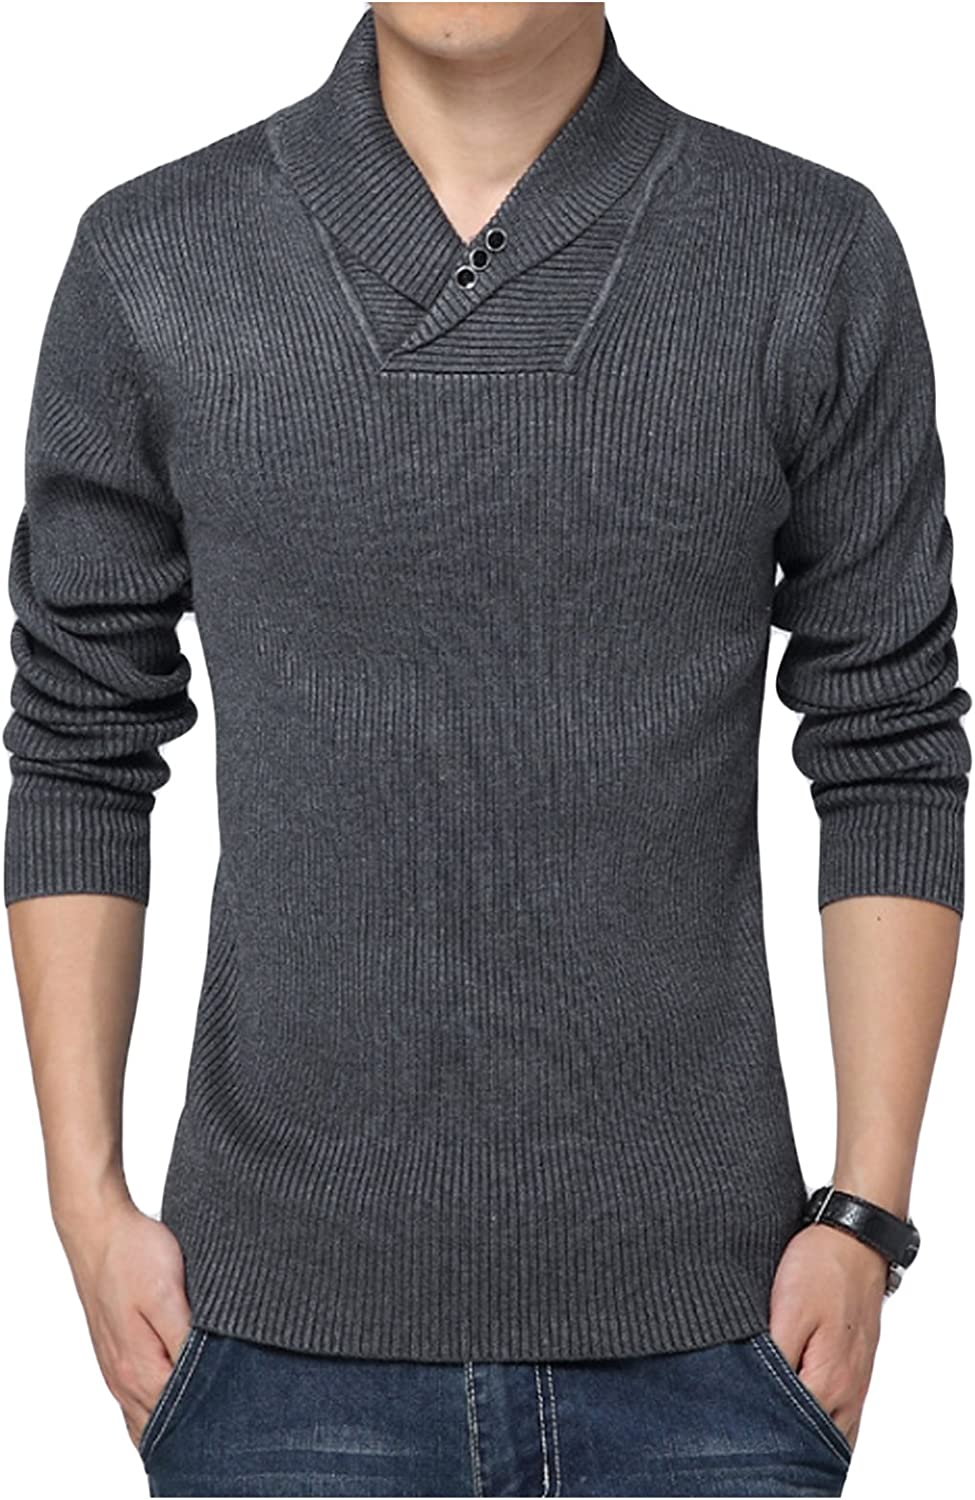 Jueshanzj Mens Pullover V-Neck Long Sleeve Knitted Sweater